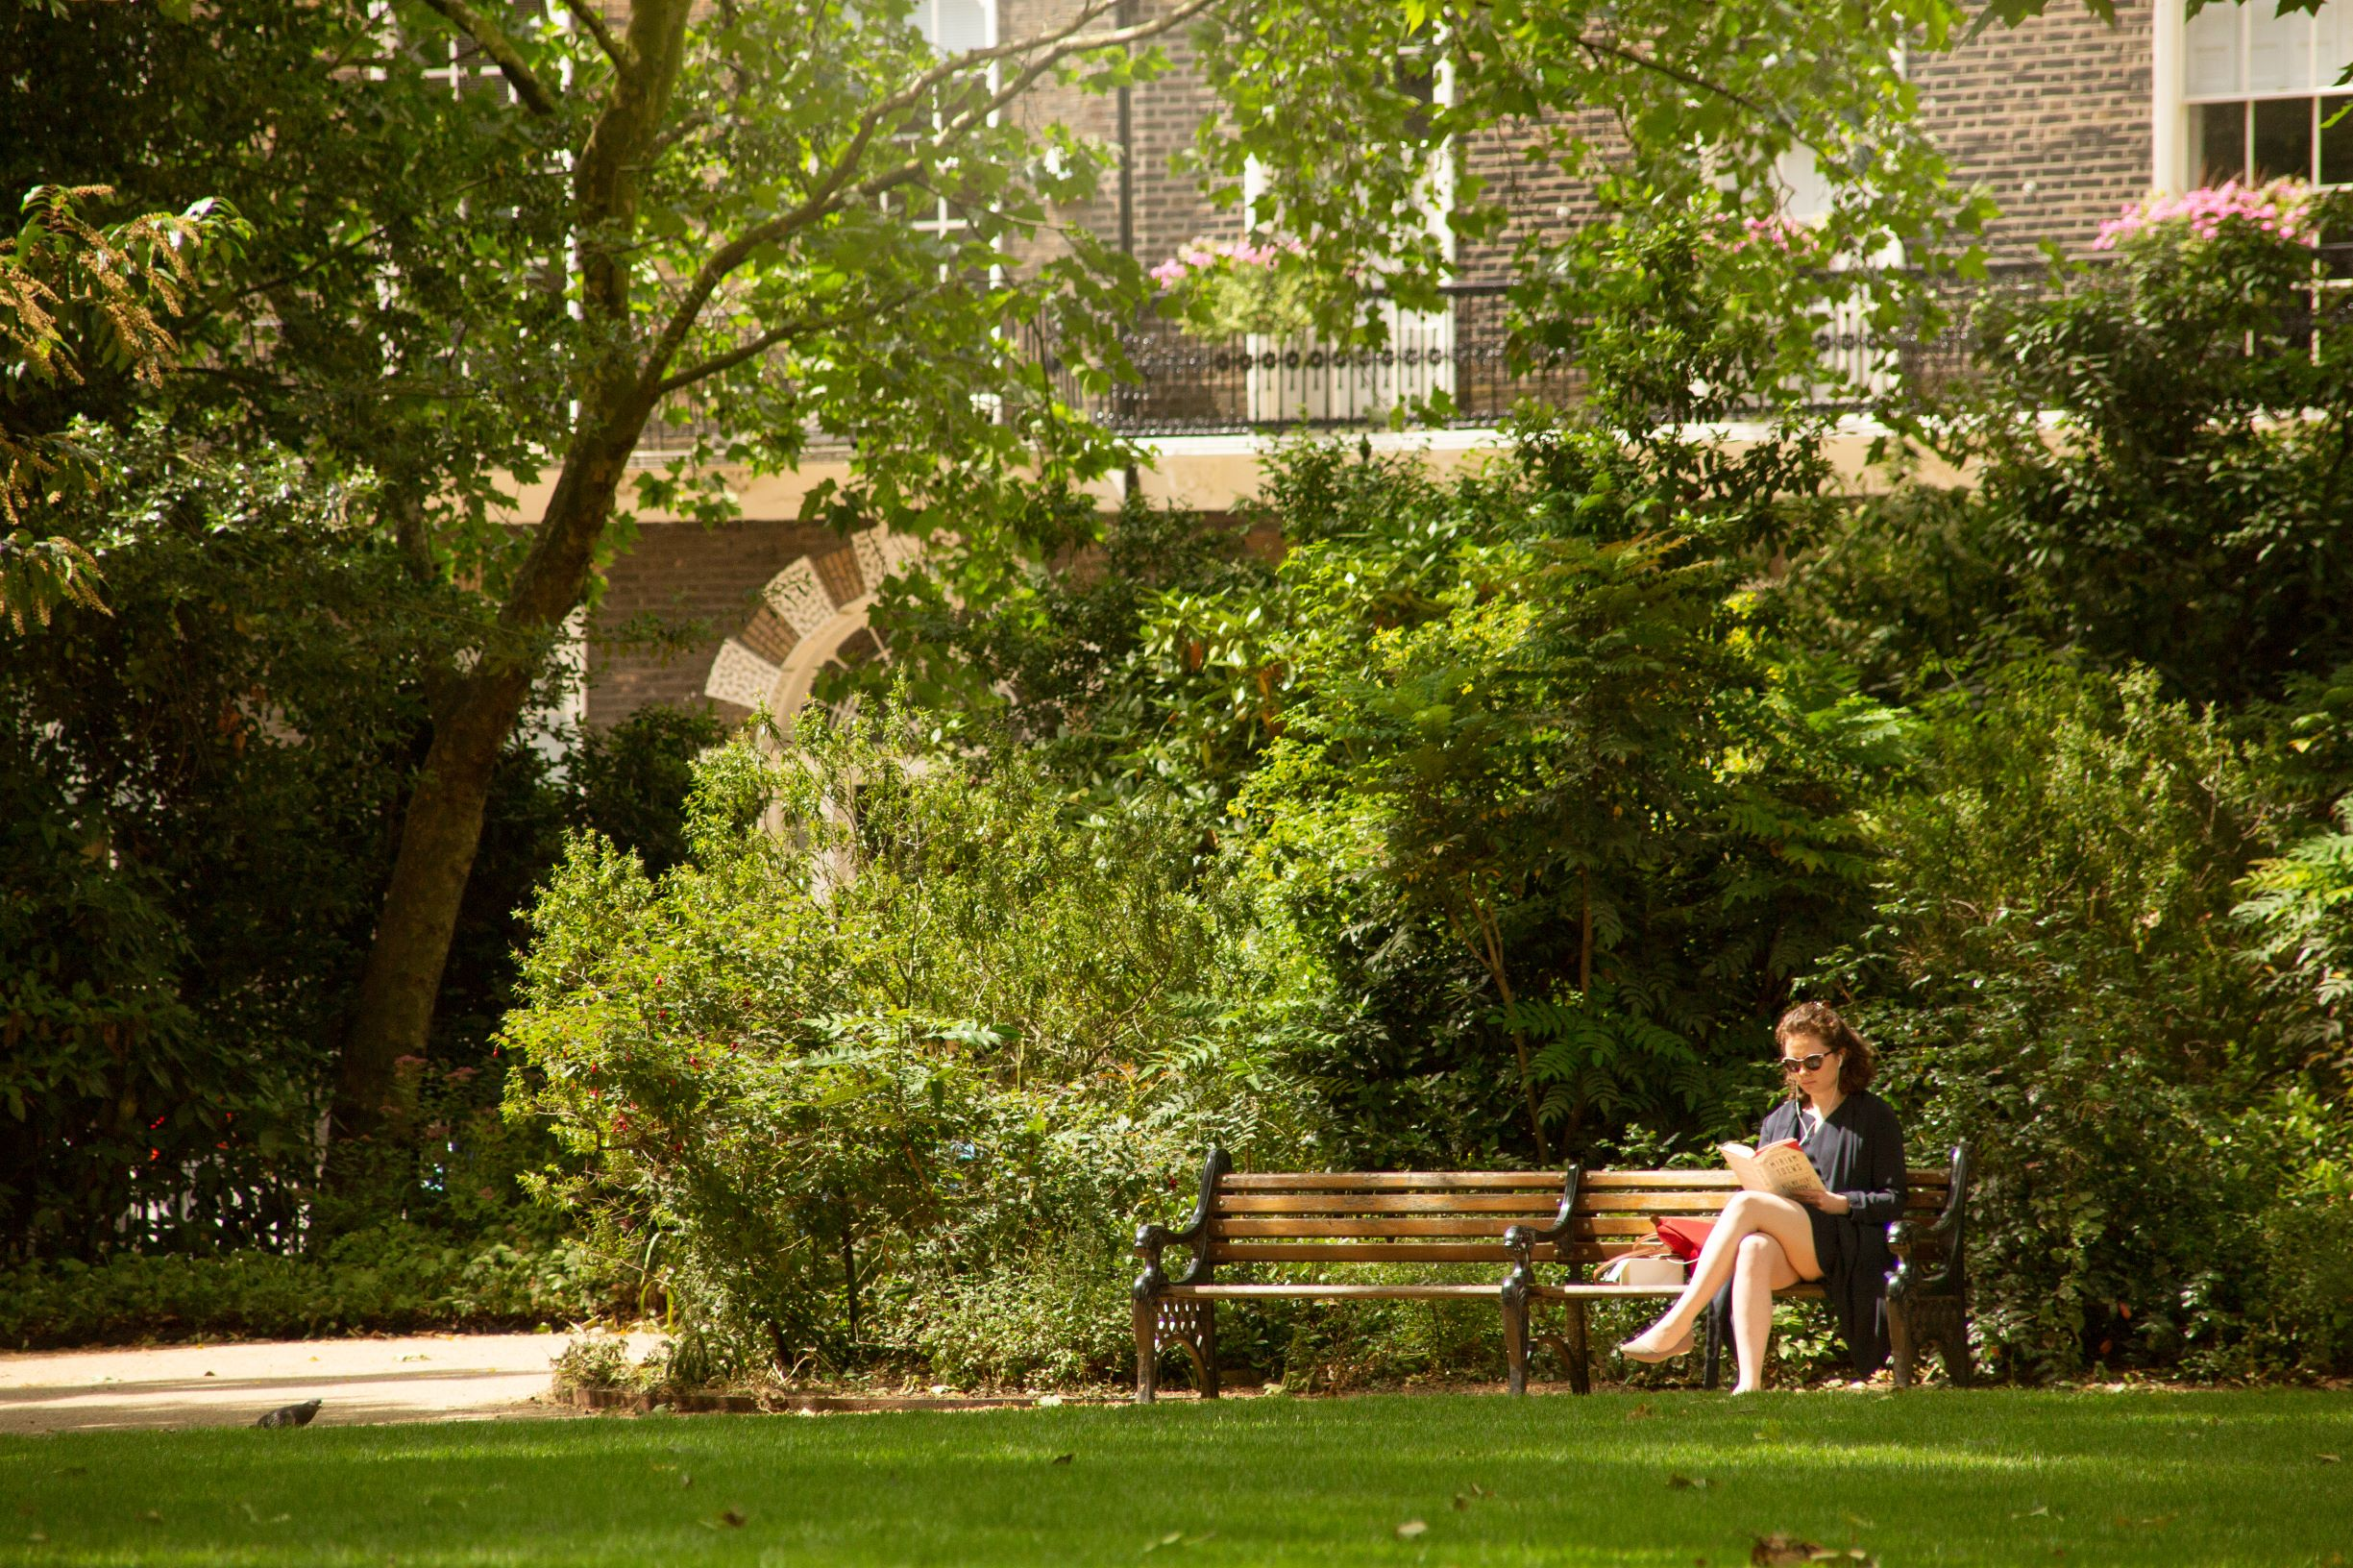 woman sat on bench reading